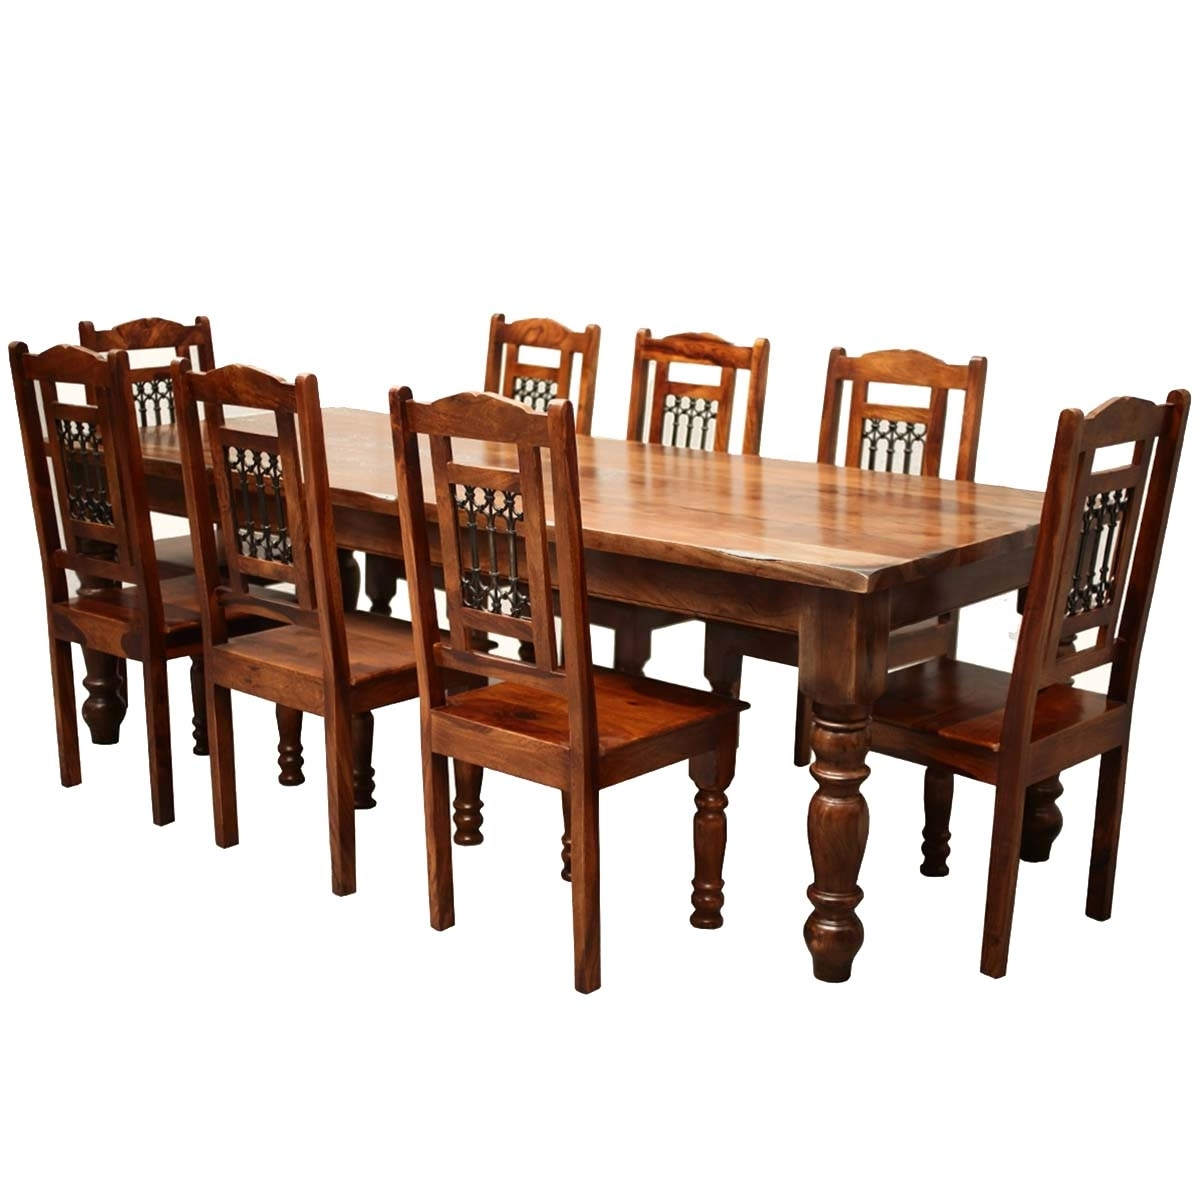 Most Up To Date Rustic Furniture Solid Wood Large Dining Table & 8 Chair Set Intended For Dining Tables 8 Chairs (View 15 of 25)